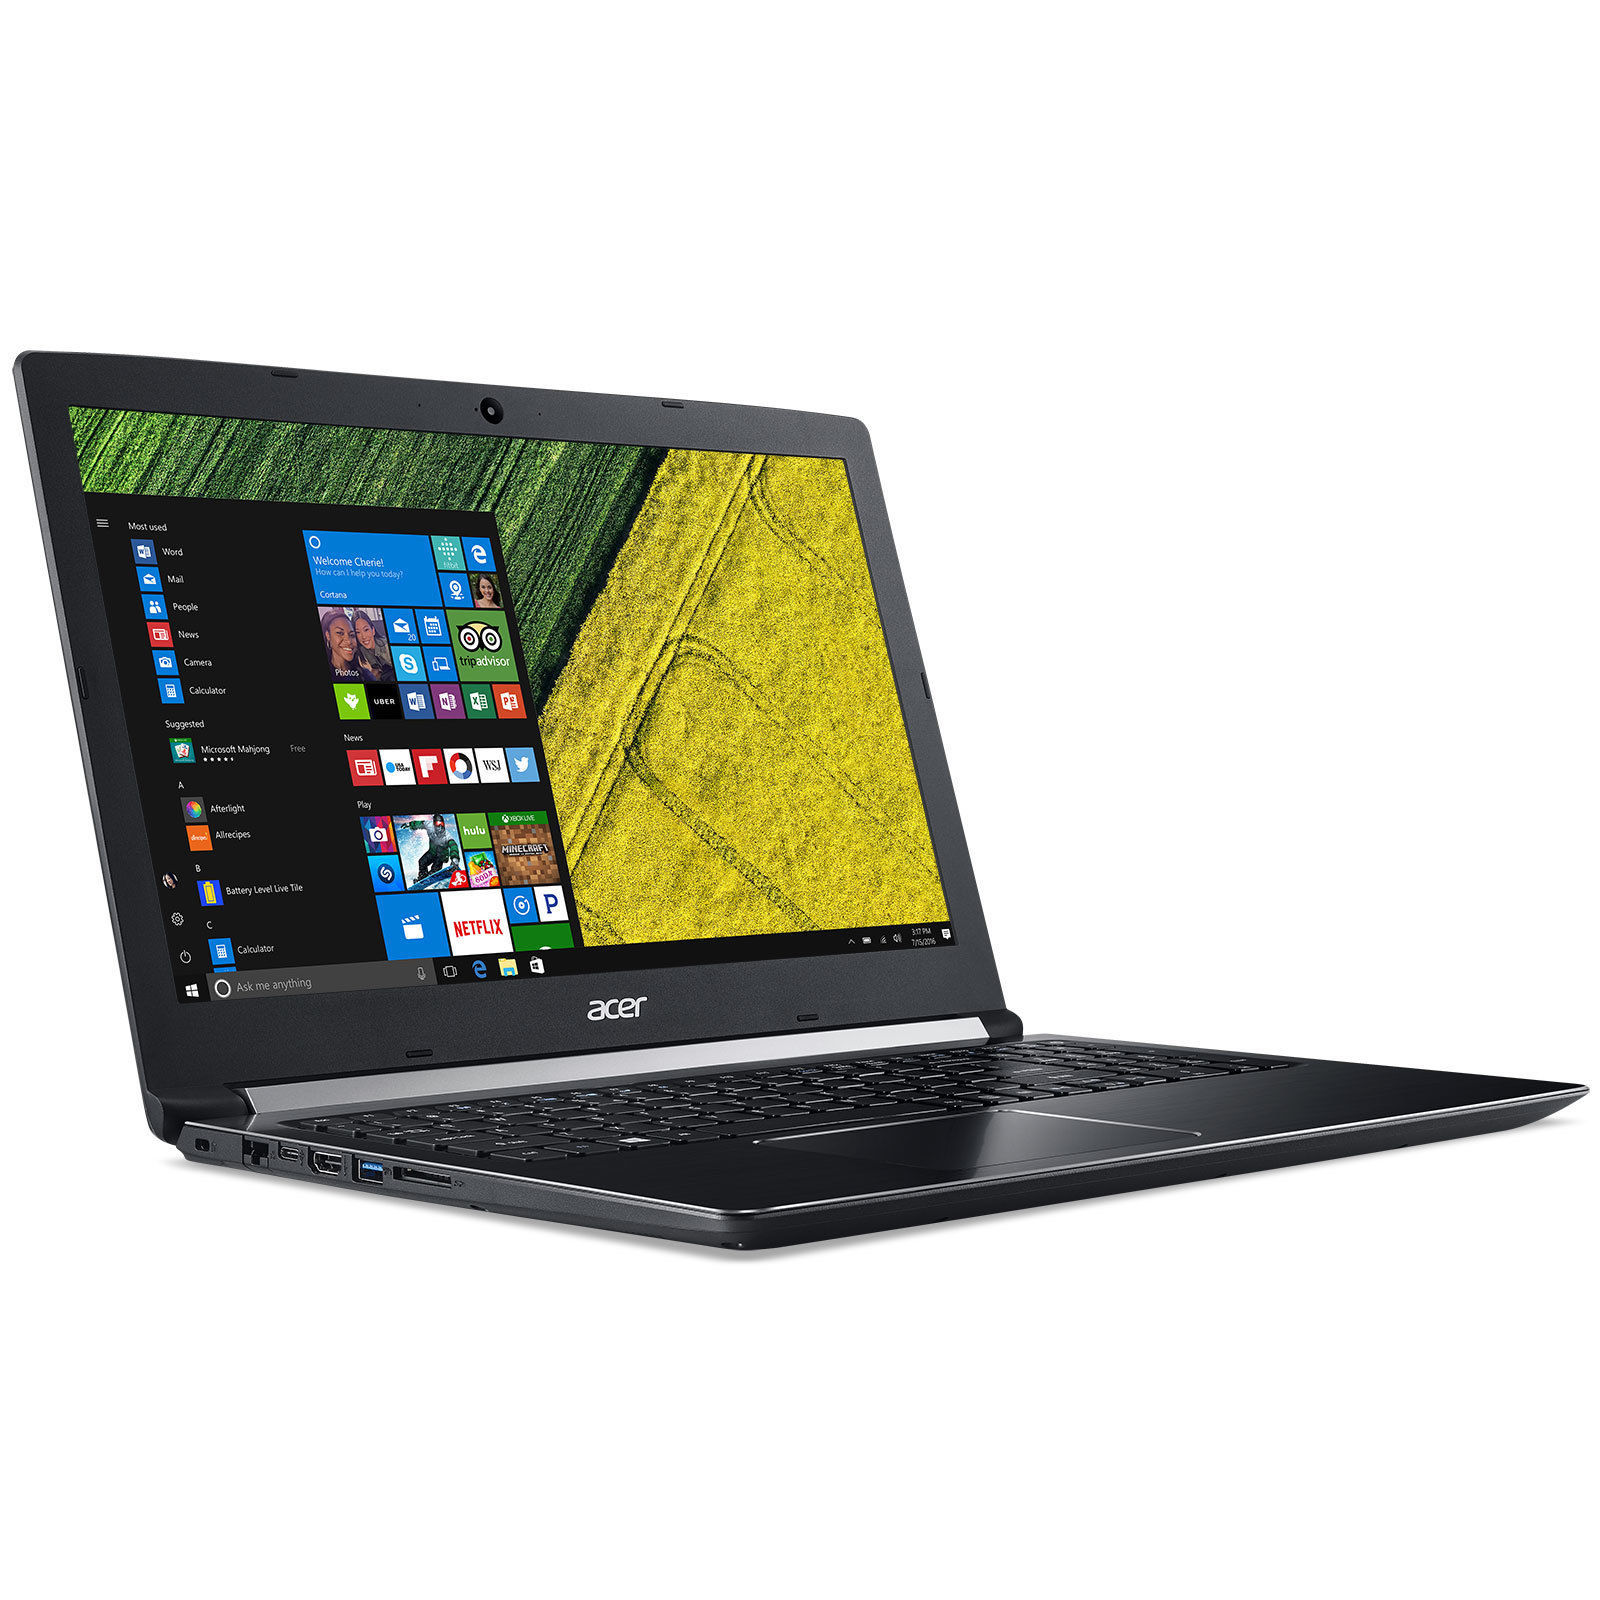 Aspire 5- Intel Core i3-6006U - RAM 4 Go - HDD 1 To - Ecran 15.6'' Full HD NVIDIA GeForce 940MX - Windows 10 Famille 64 bits